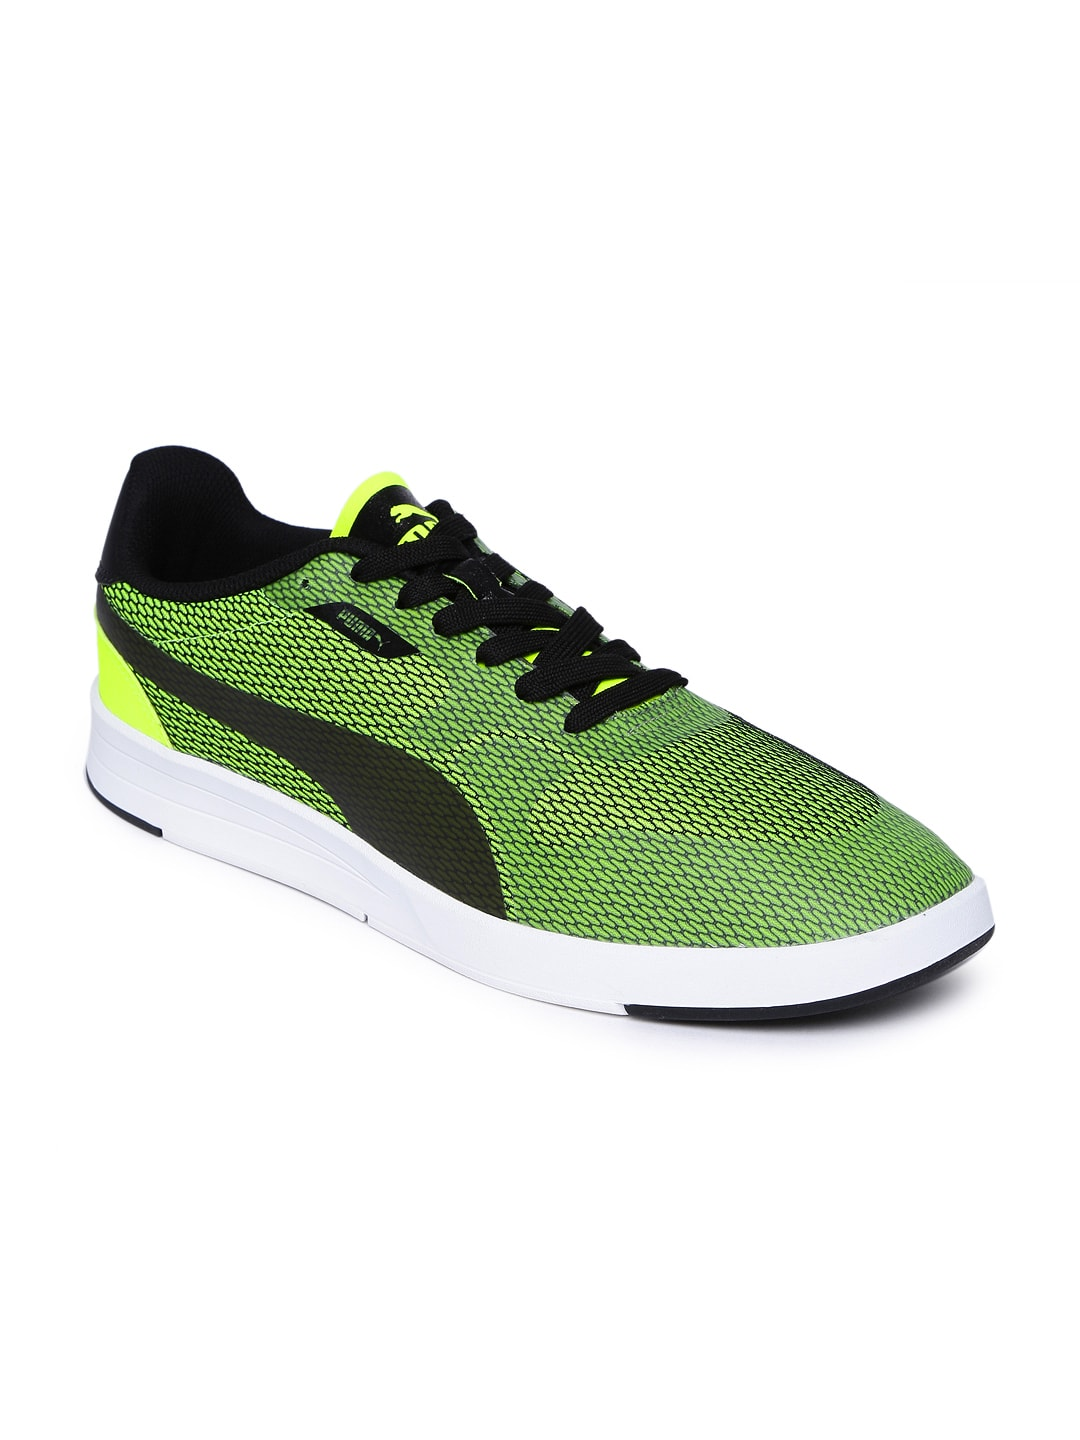 f9aa0fc2e4c435 Puma Men Green Shoes Casual - Buy Puma Men Green Shoes Casual online in  India